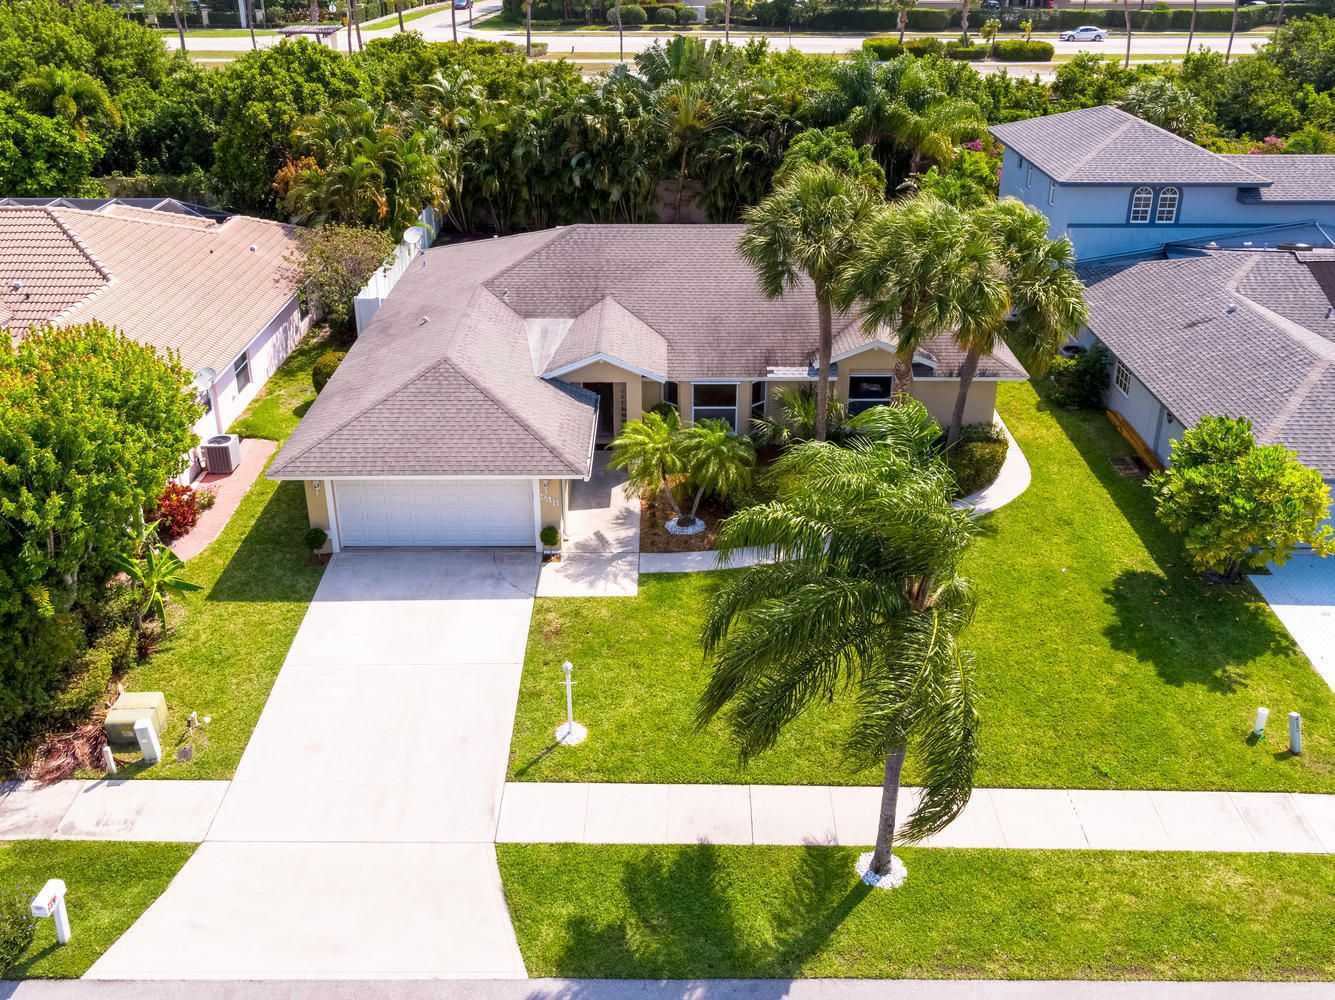 Just Sold 448 000 Home With Pool In Tequesta In 2020 Pool Houses Sell Property Outdoor Structures